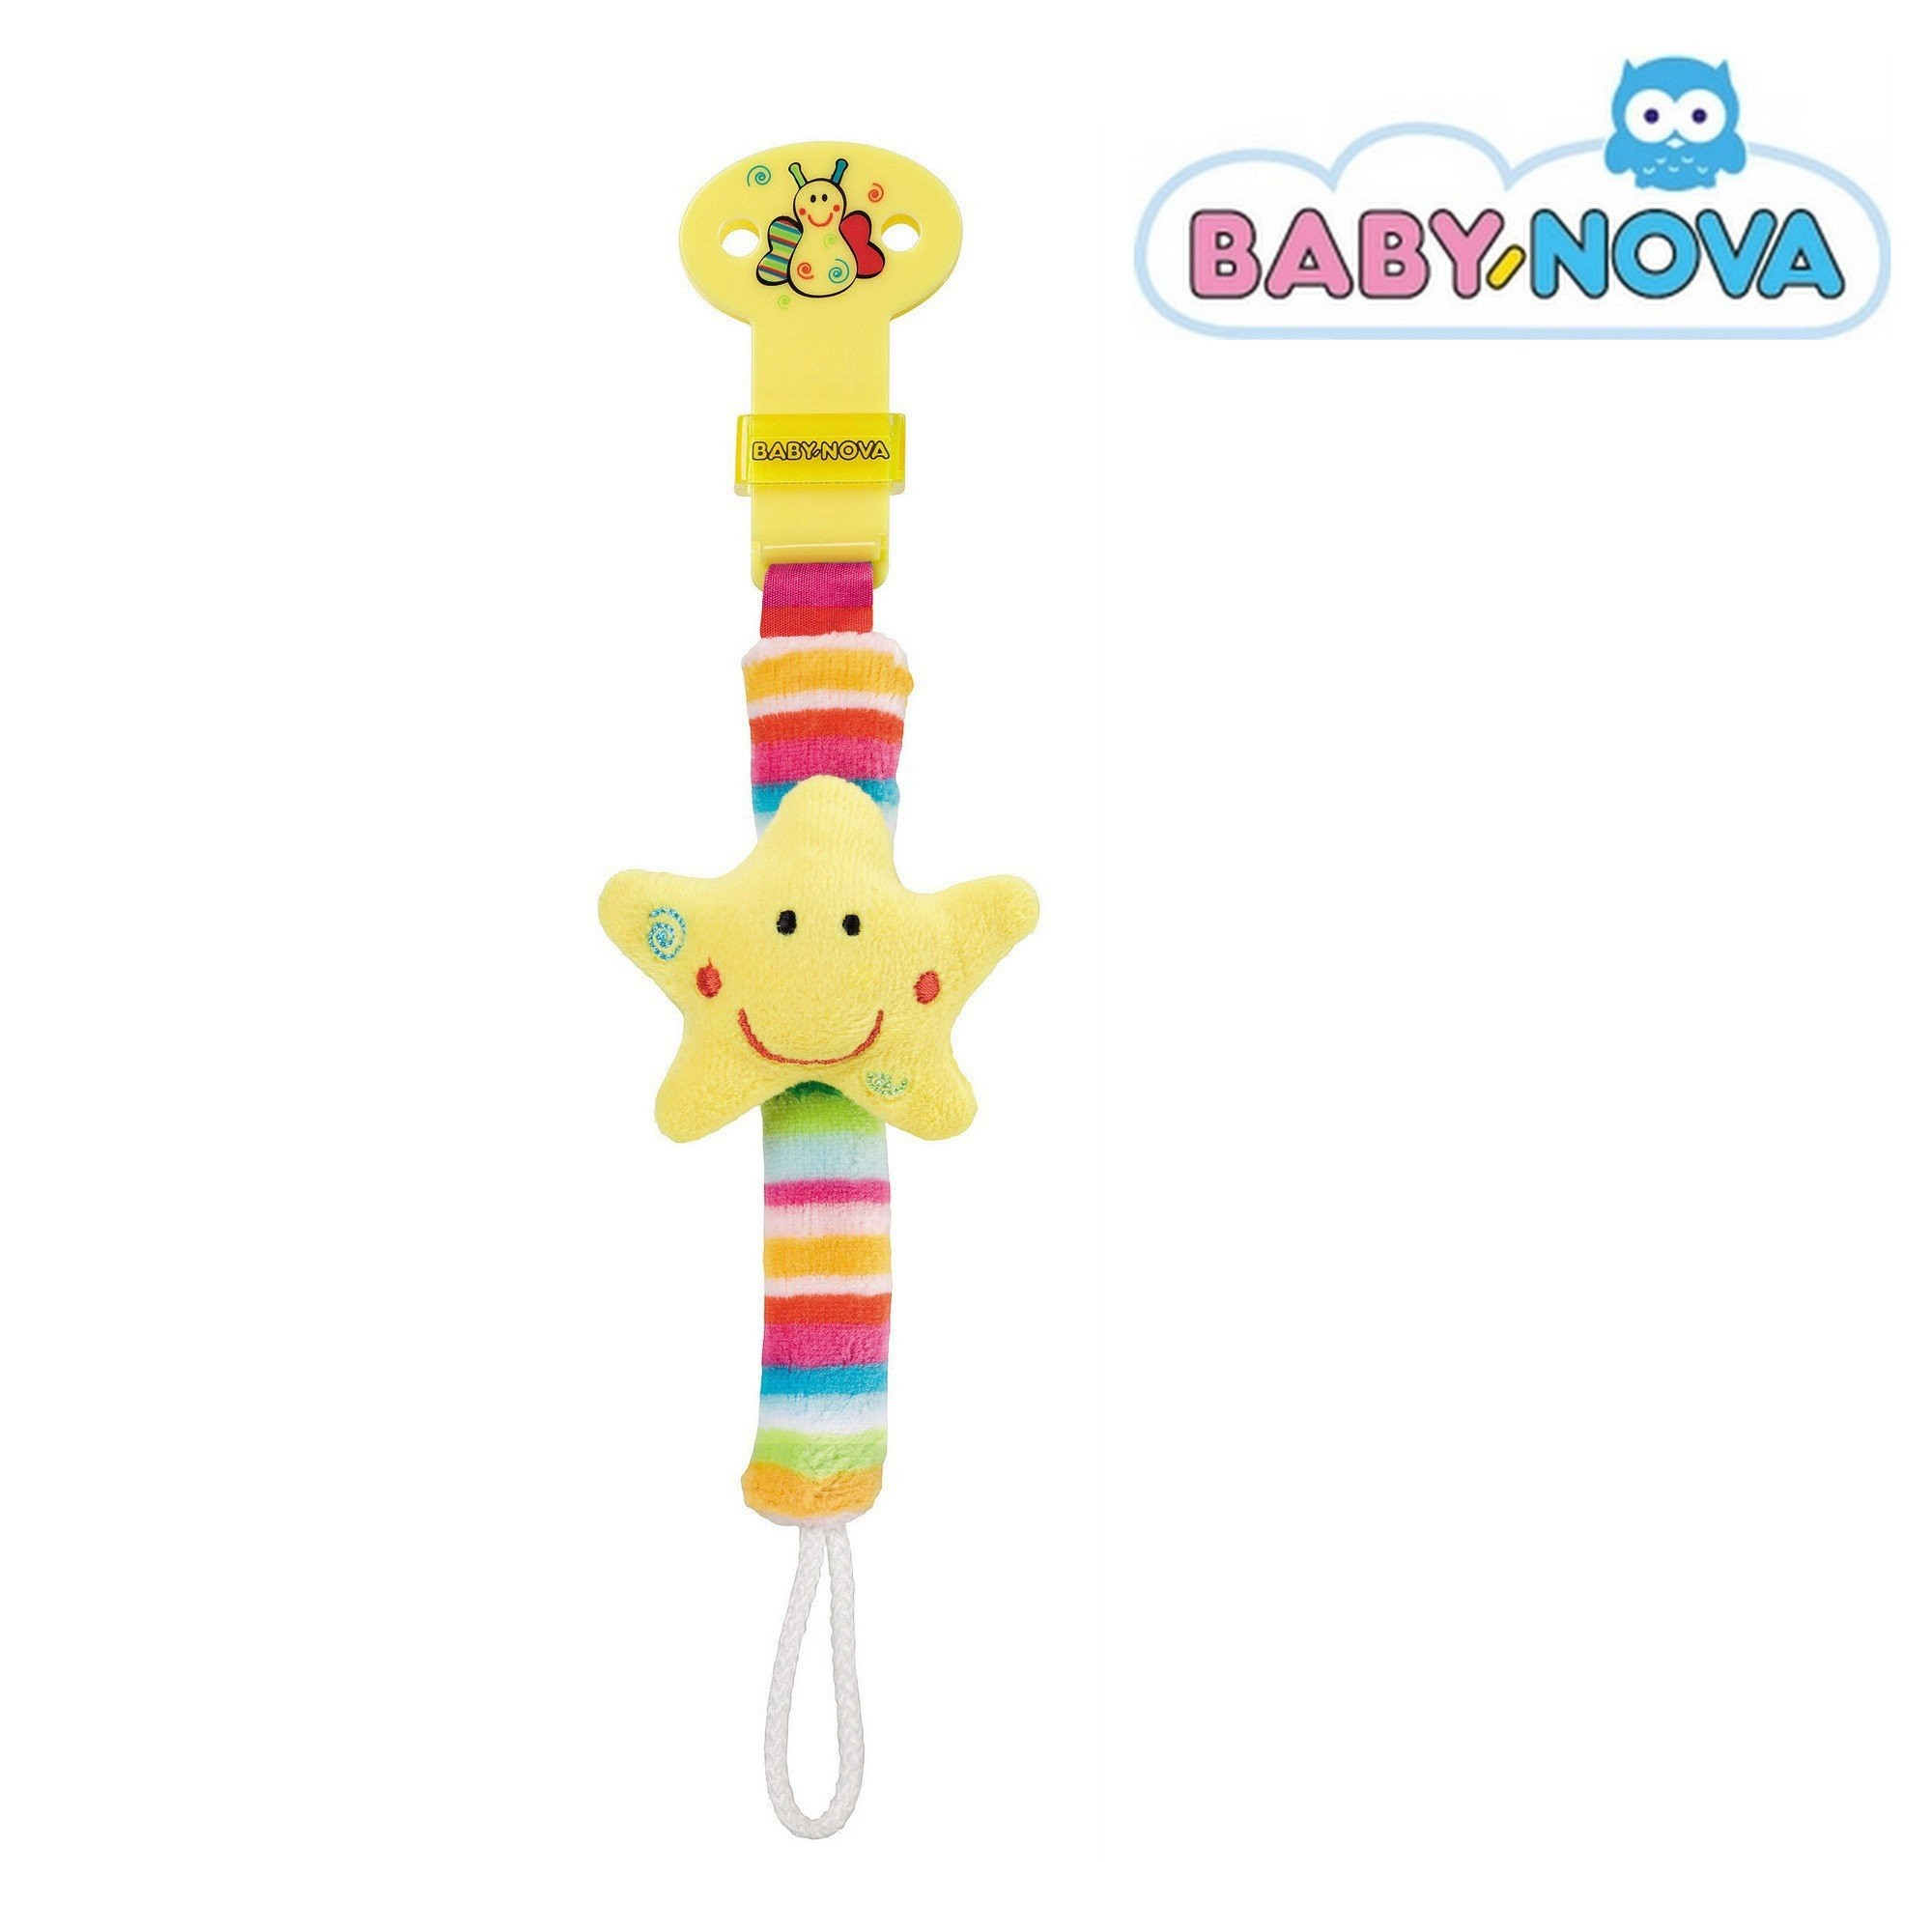 Baby Nova Pacifier Holder with Rattle - Star